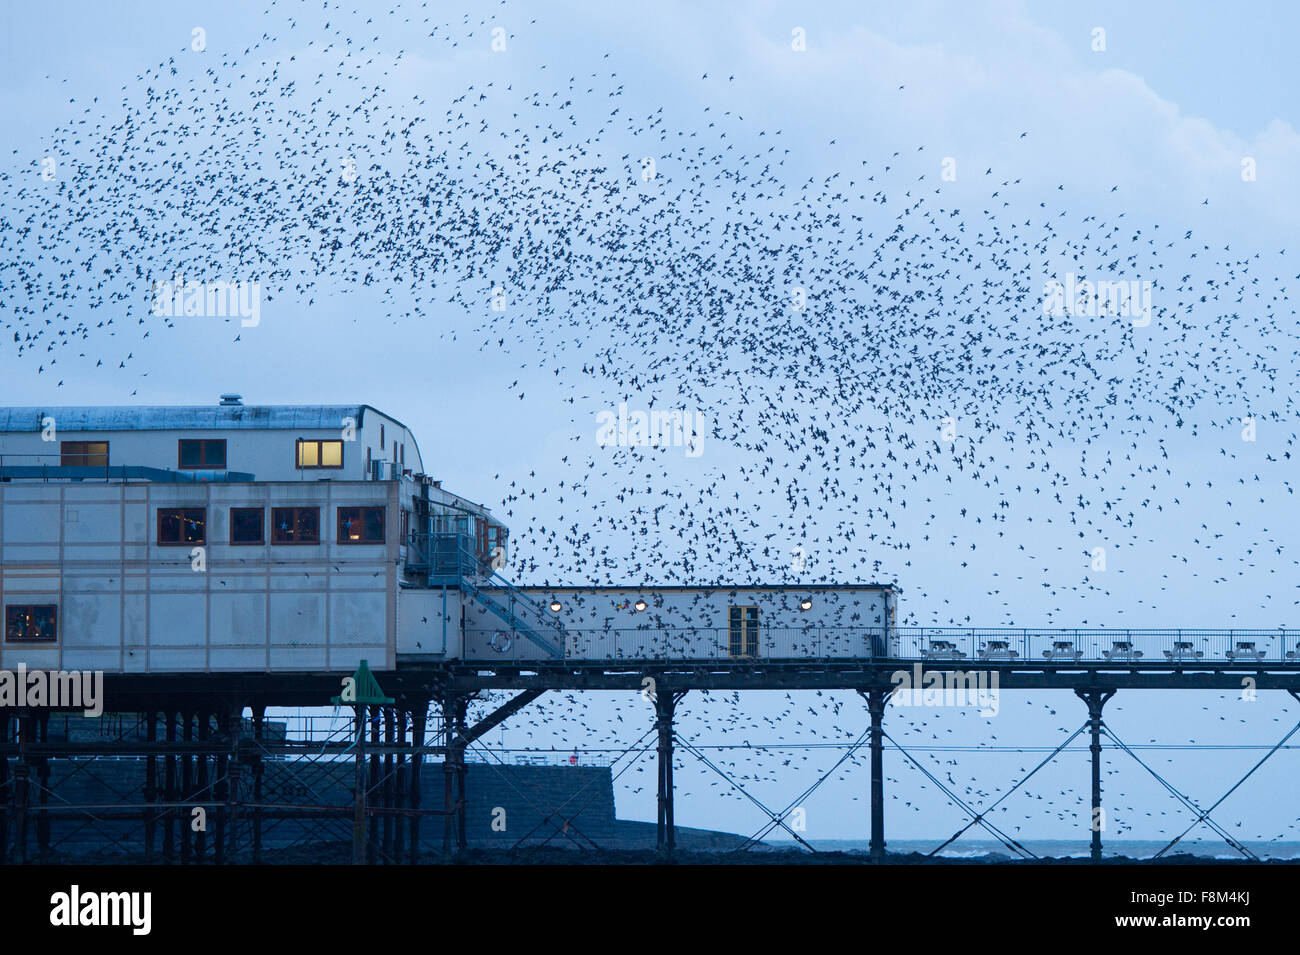 Aberystwyth Wales UK, Monday 07 December 2015 A huge flock of starlings perform spectacular displays in the air Stock Photo